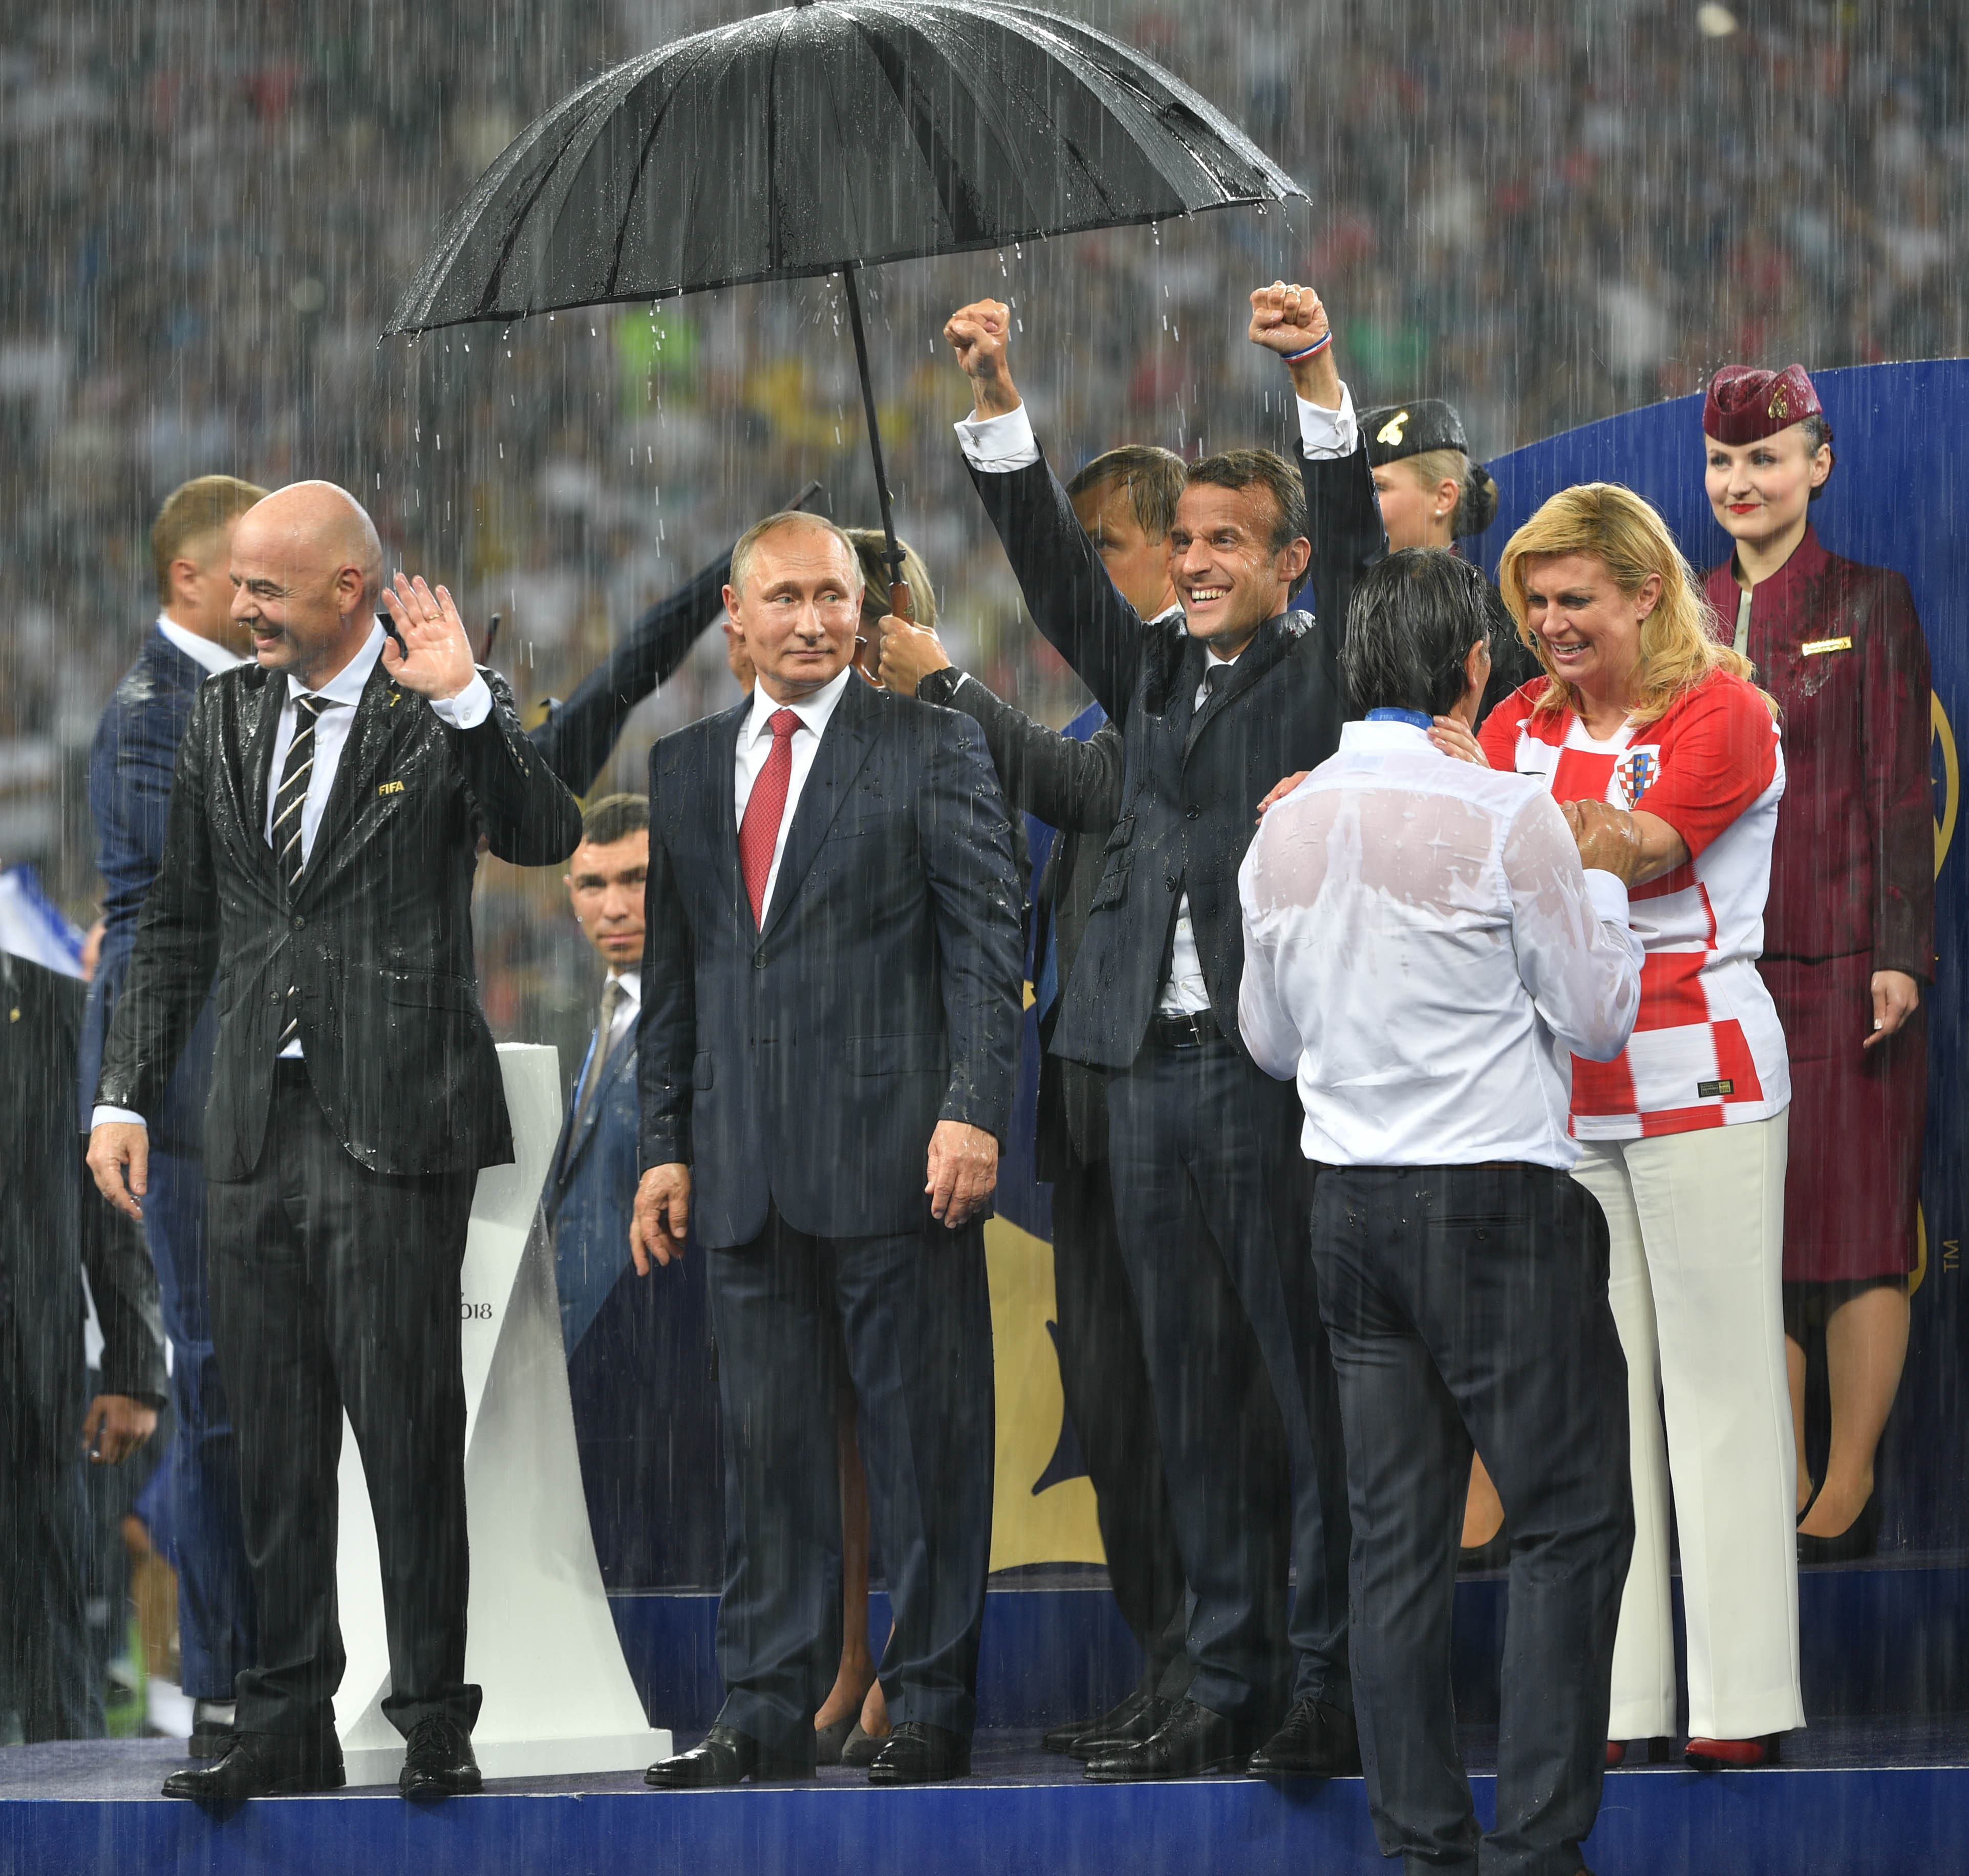 Croatia President Wins Everyones Heart With Her Huge Support For The Team kolindaputinPA